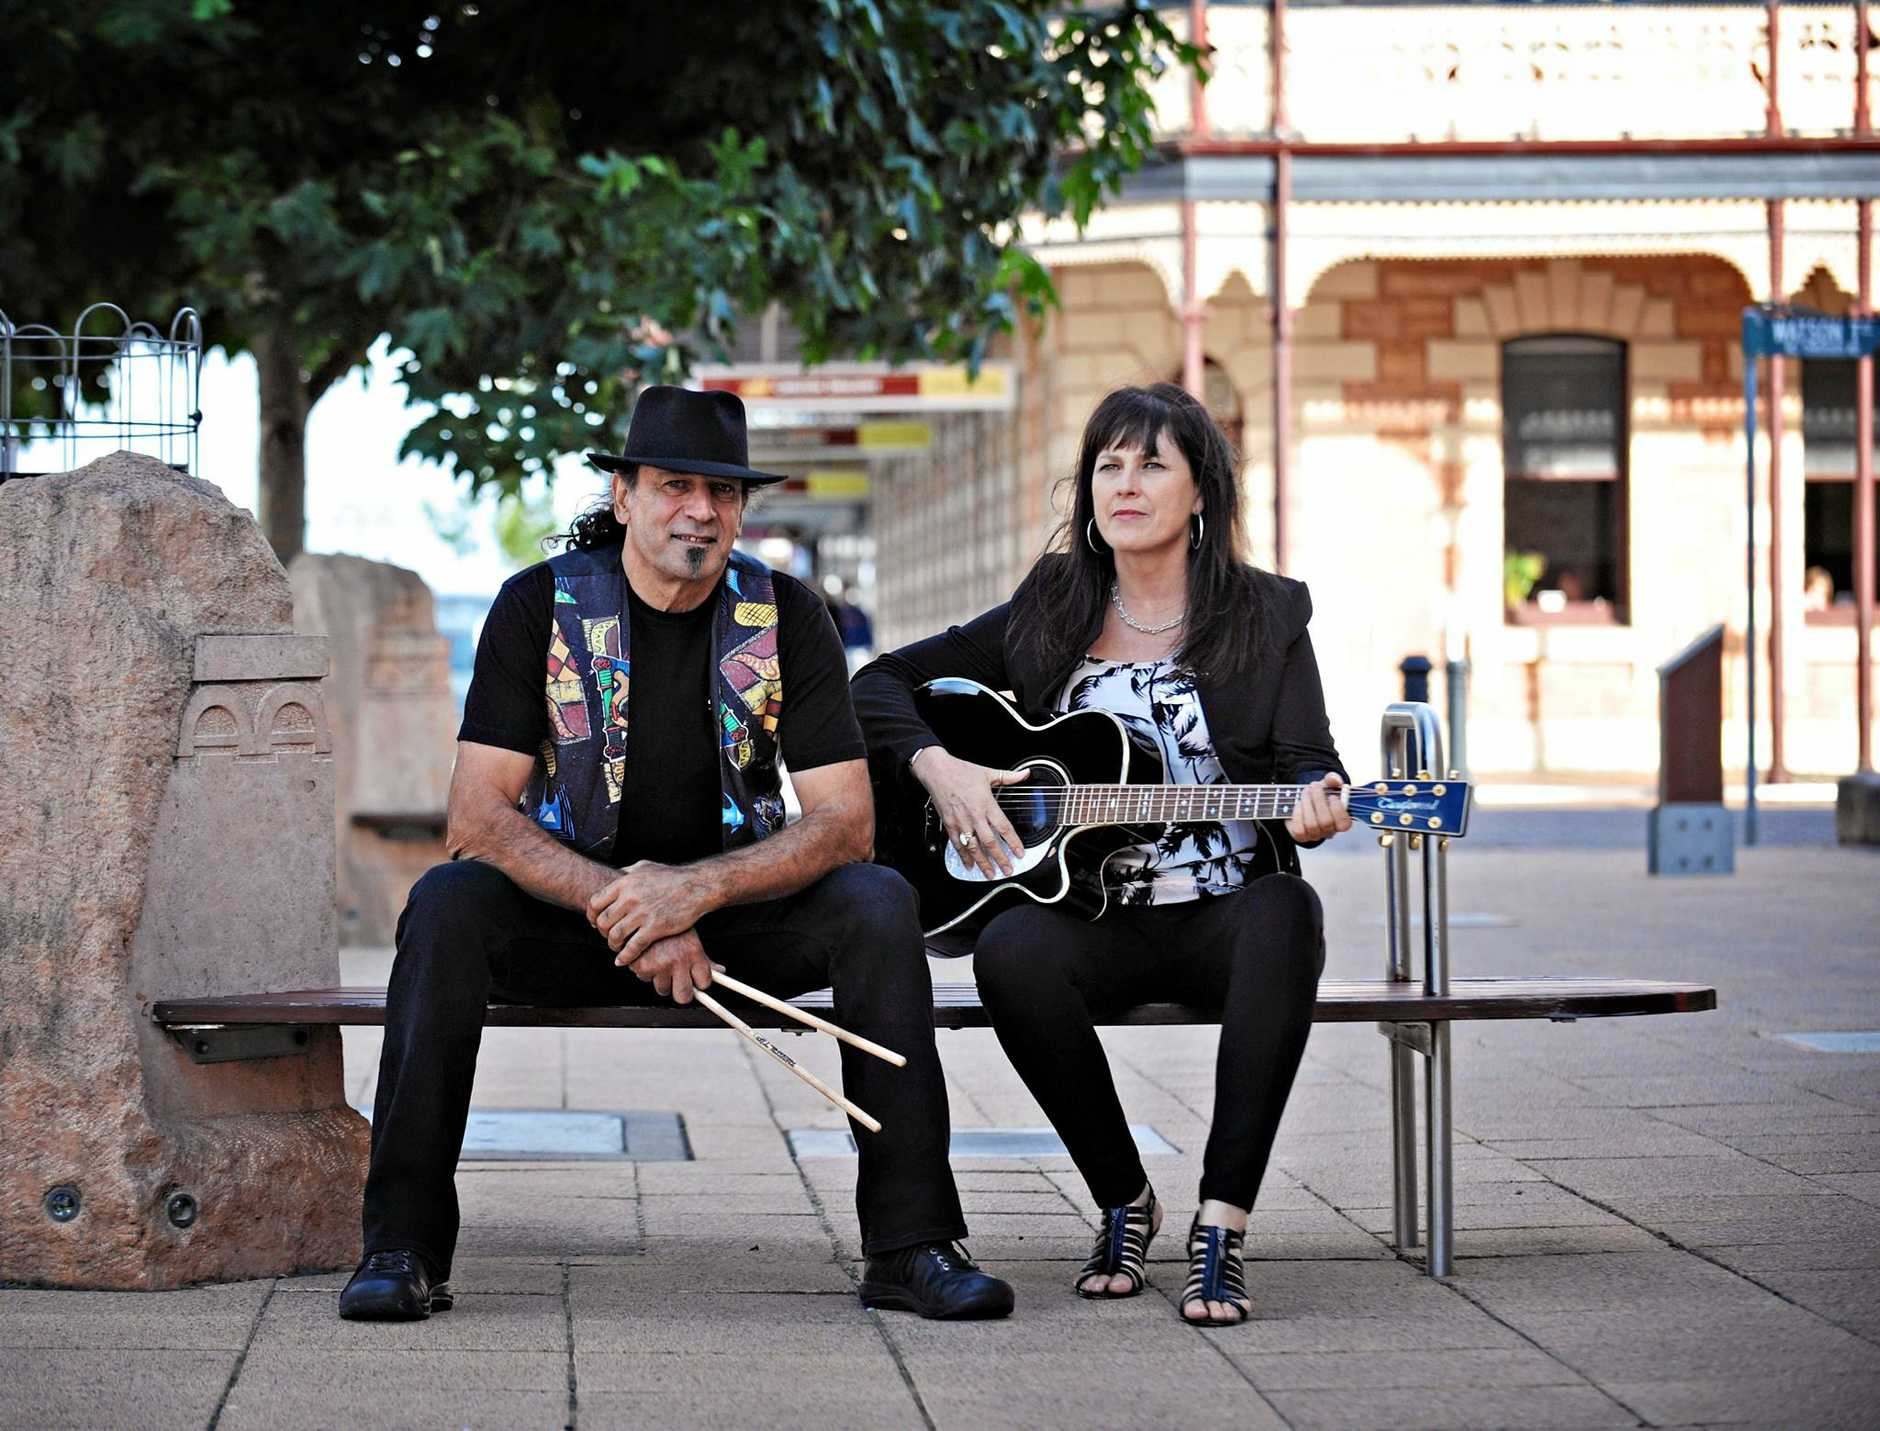 COMING SOON: Lily and the Drum band members John Yacka and Lily Higgins will be touring Queensland in August.